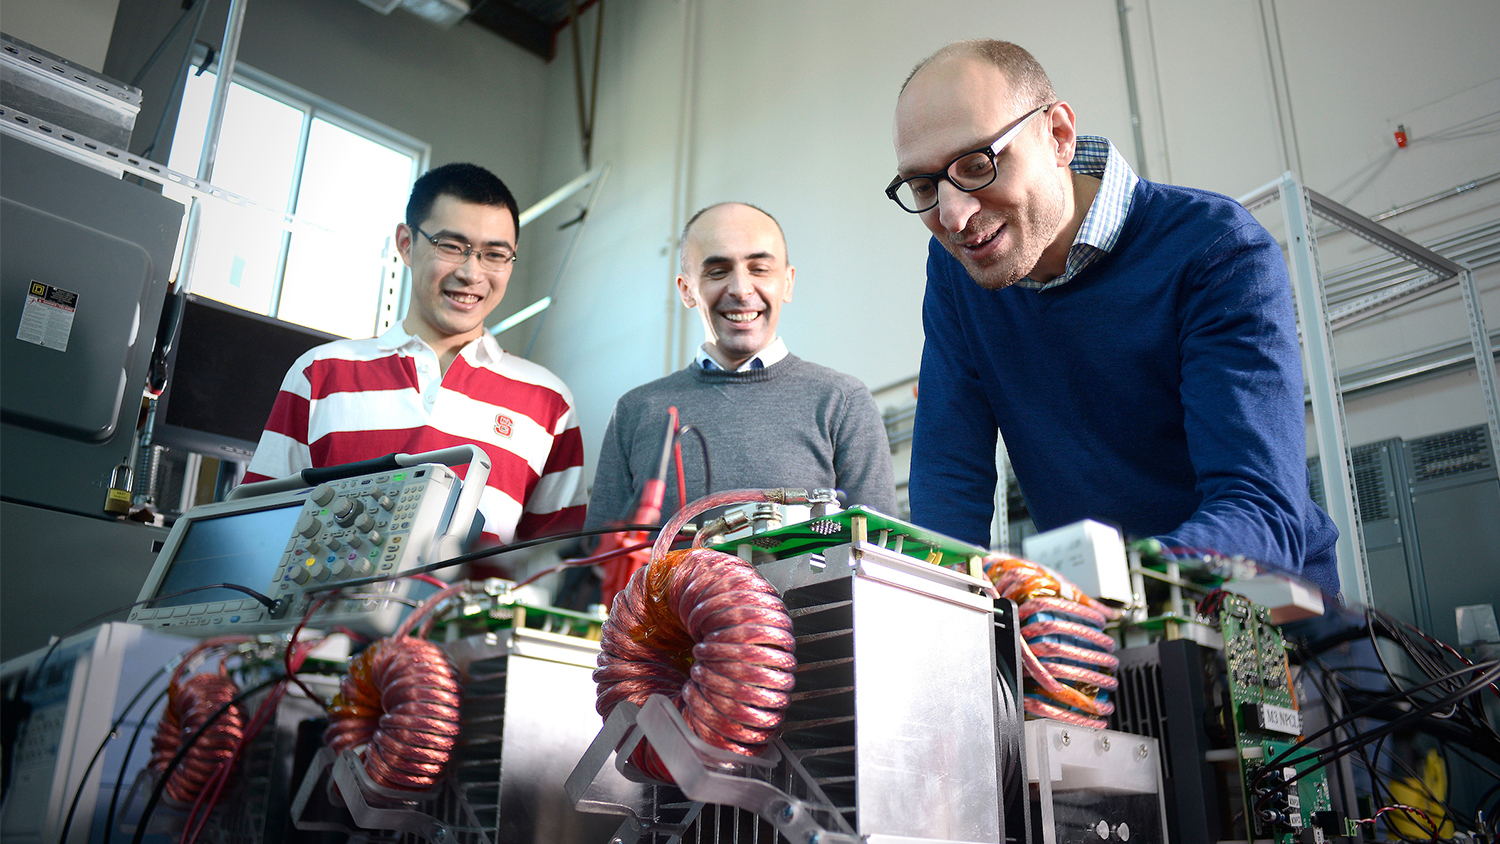 NC State researchers working on a power grid.